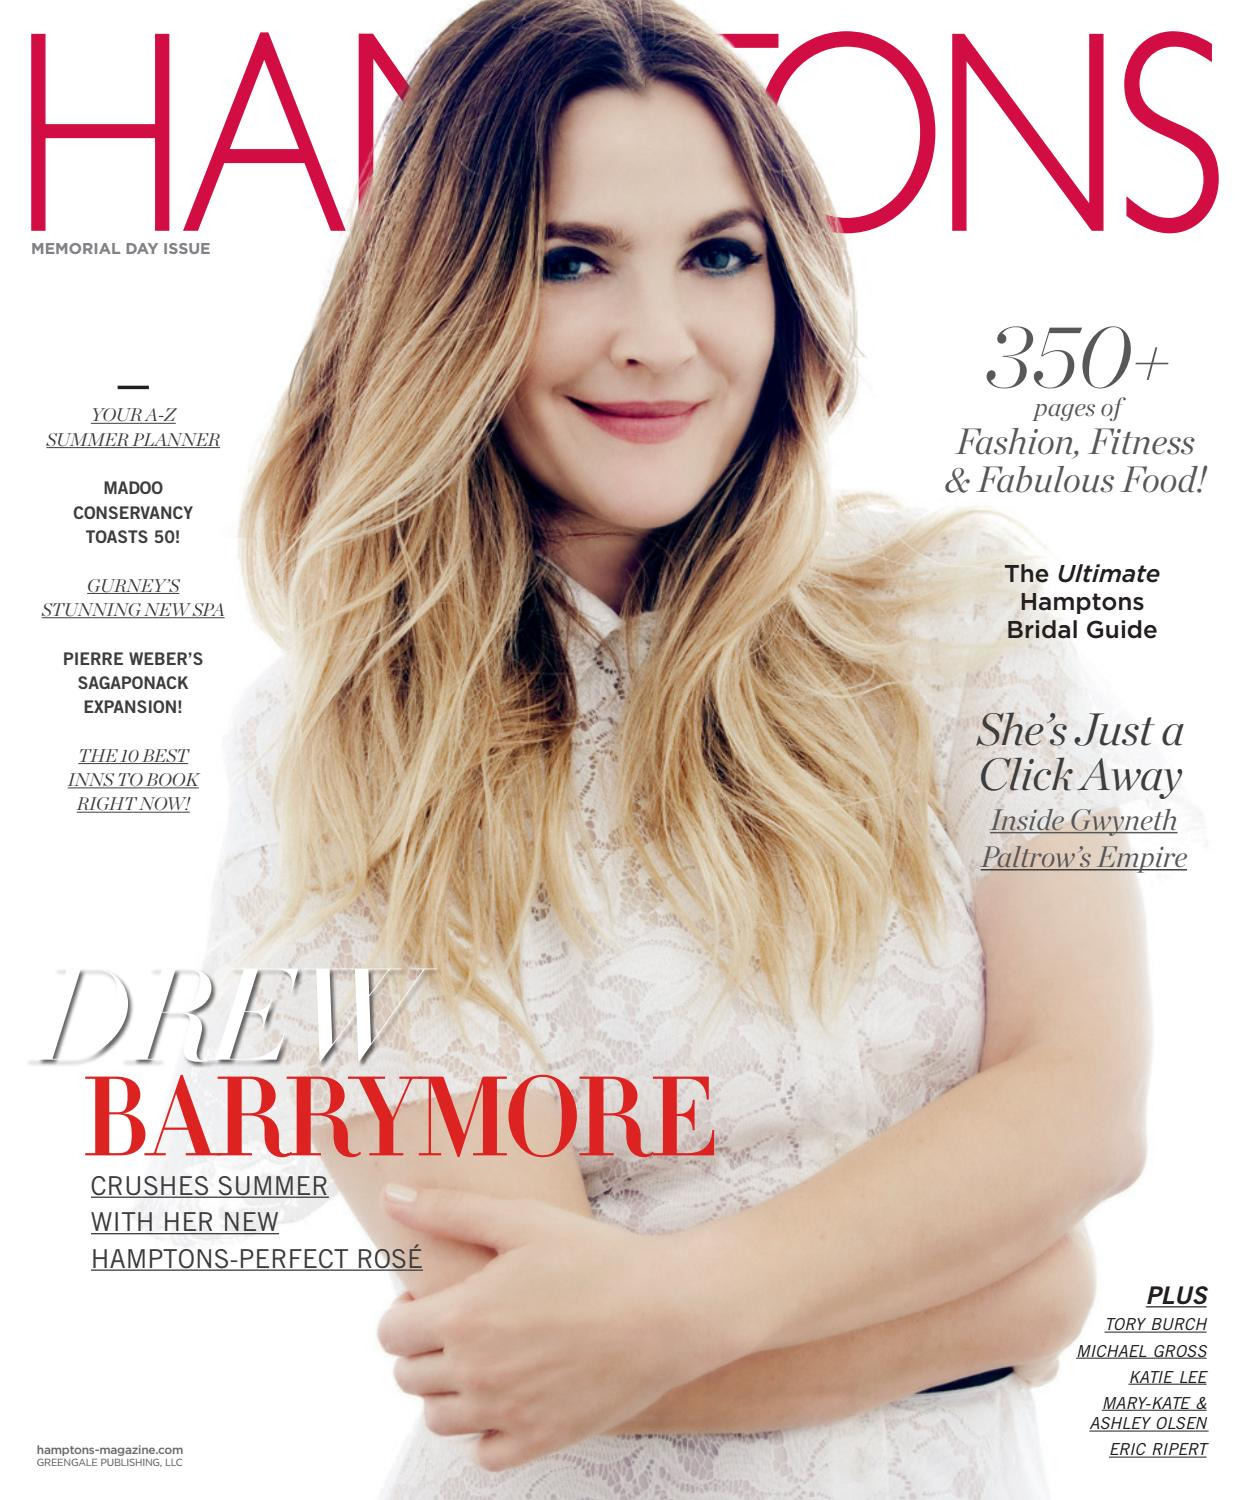 d18dba2adee57b Hamptons - 2016 - Issue 1 - Memorial Day - Drew Barrymore by MODERN LUXURY  - issuu